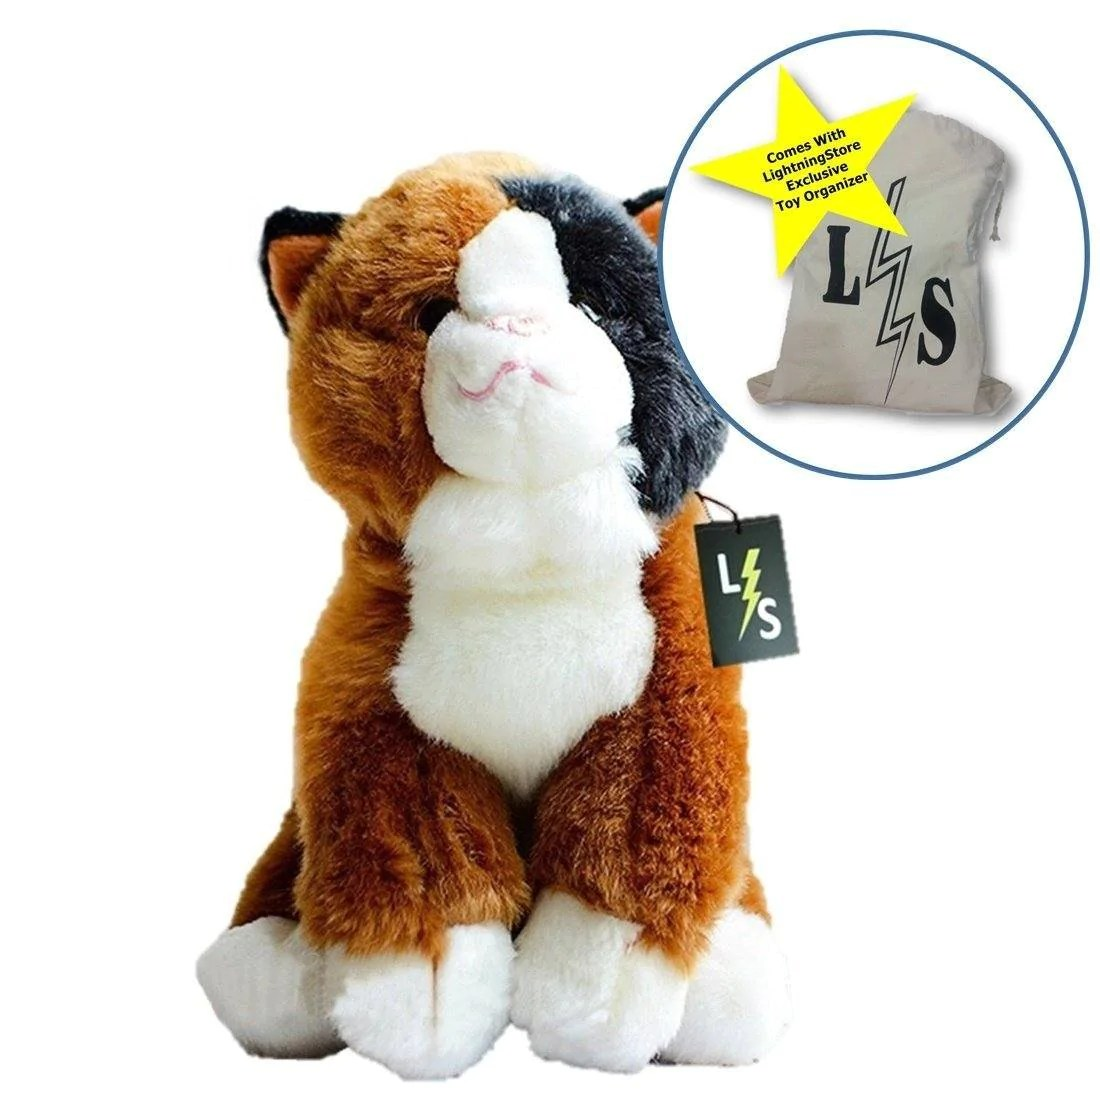 Cat Plush Toy Lightningstore Adorable Cute Brown Exotic Shorthair Cat Kitten Stuffed Animal Doll Realistic Looking Plush Toys Plushie Children S Gifts Animals Toy